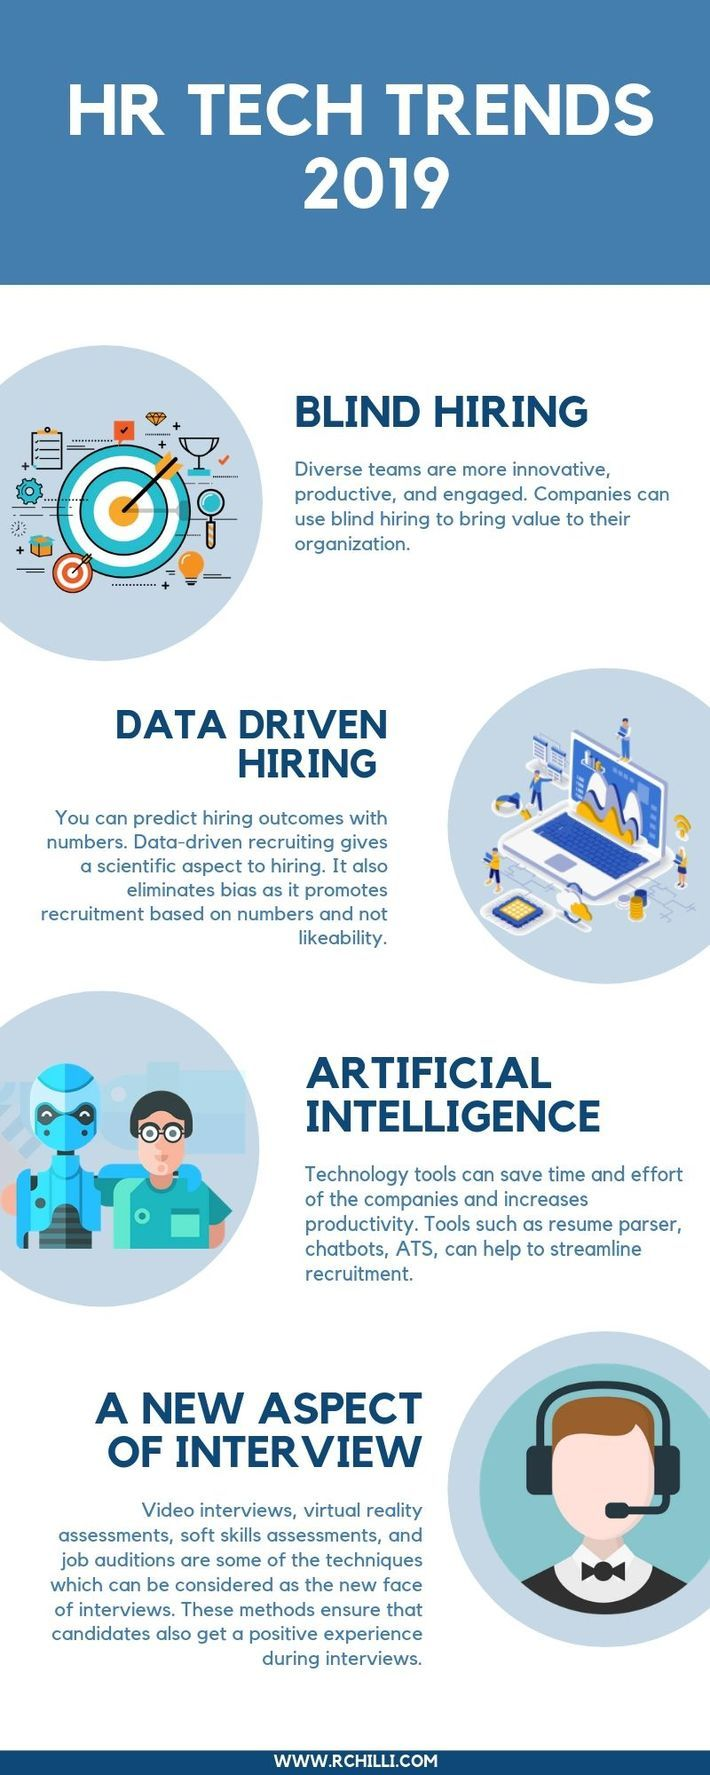 Top 4 Recruiting Trends Of 2019 Recruitingblogs Career Coaching Tools Recruitment Job Search Tips